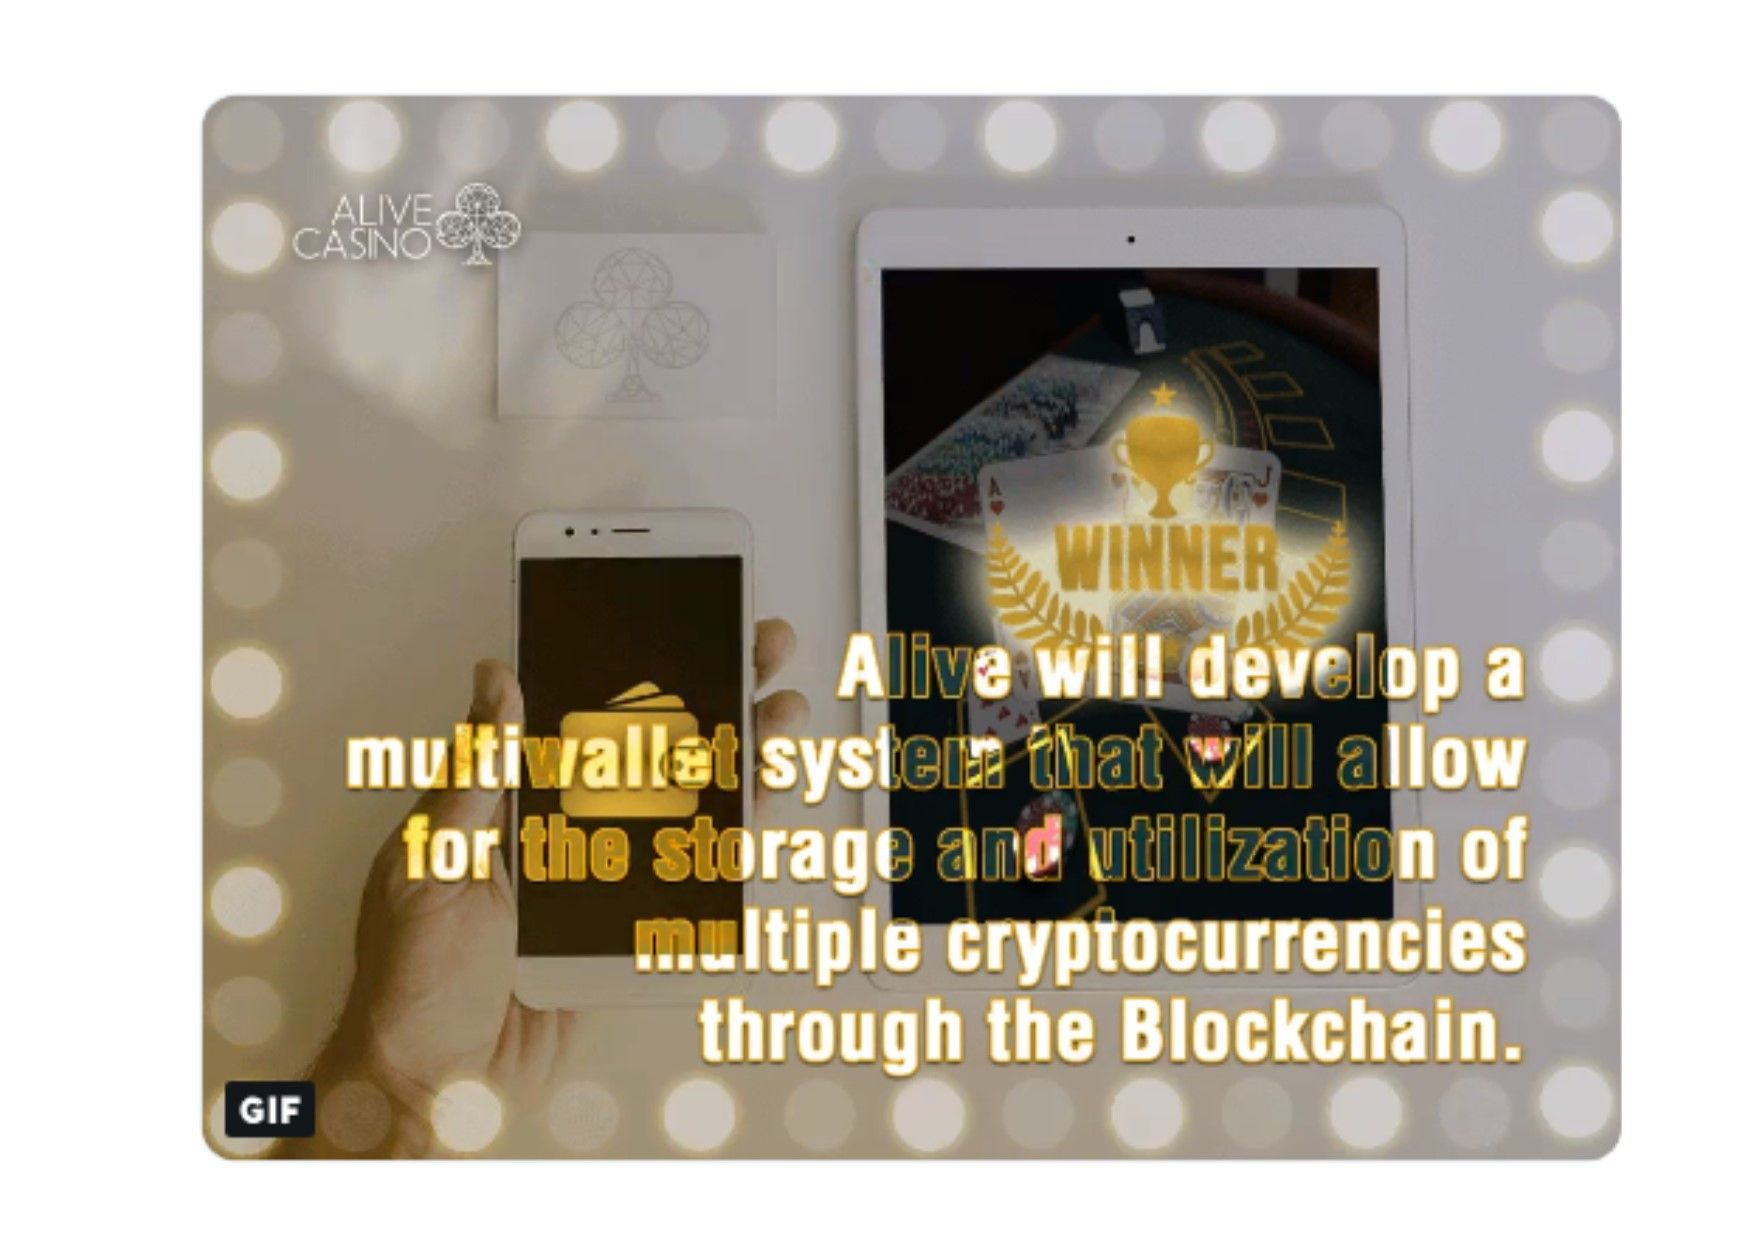 Alive will develop a multiwallet system that will allow